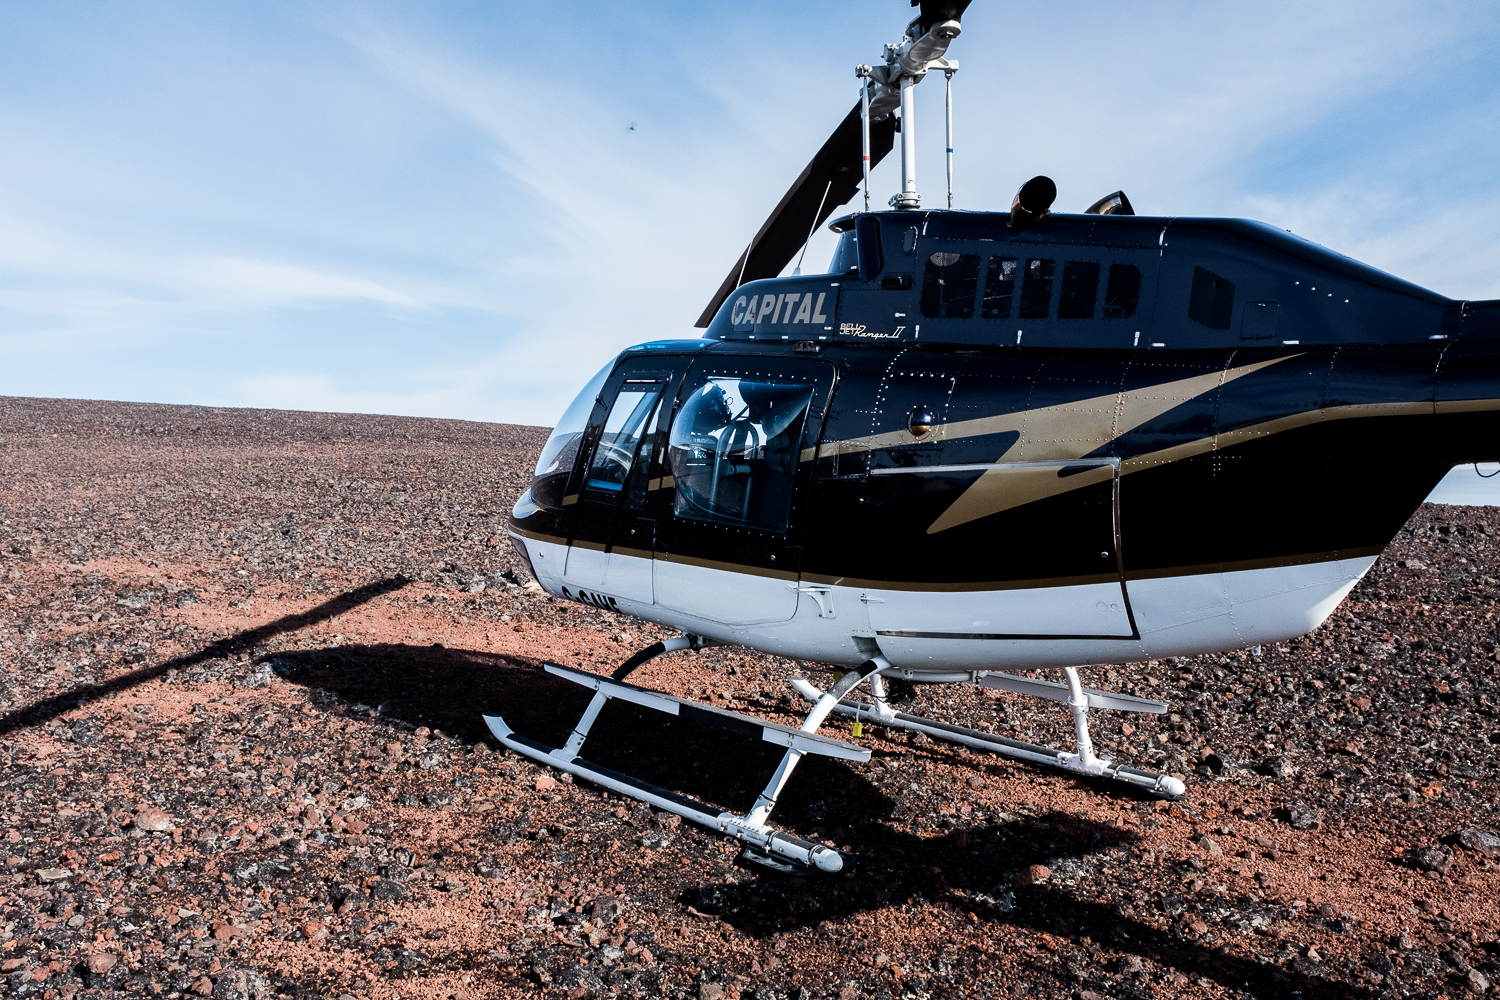 The Bell 206B Jet Ranger is a turbine engine helicopter capable of carrying four passengers.